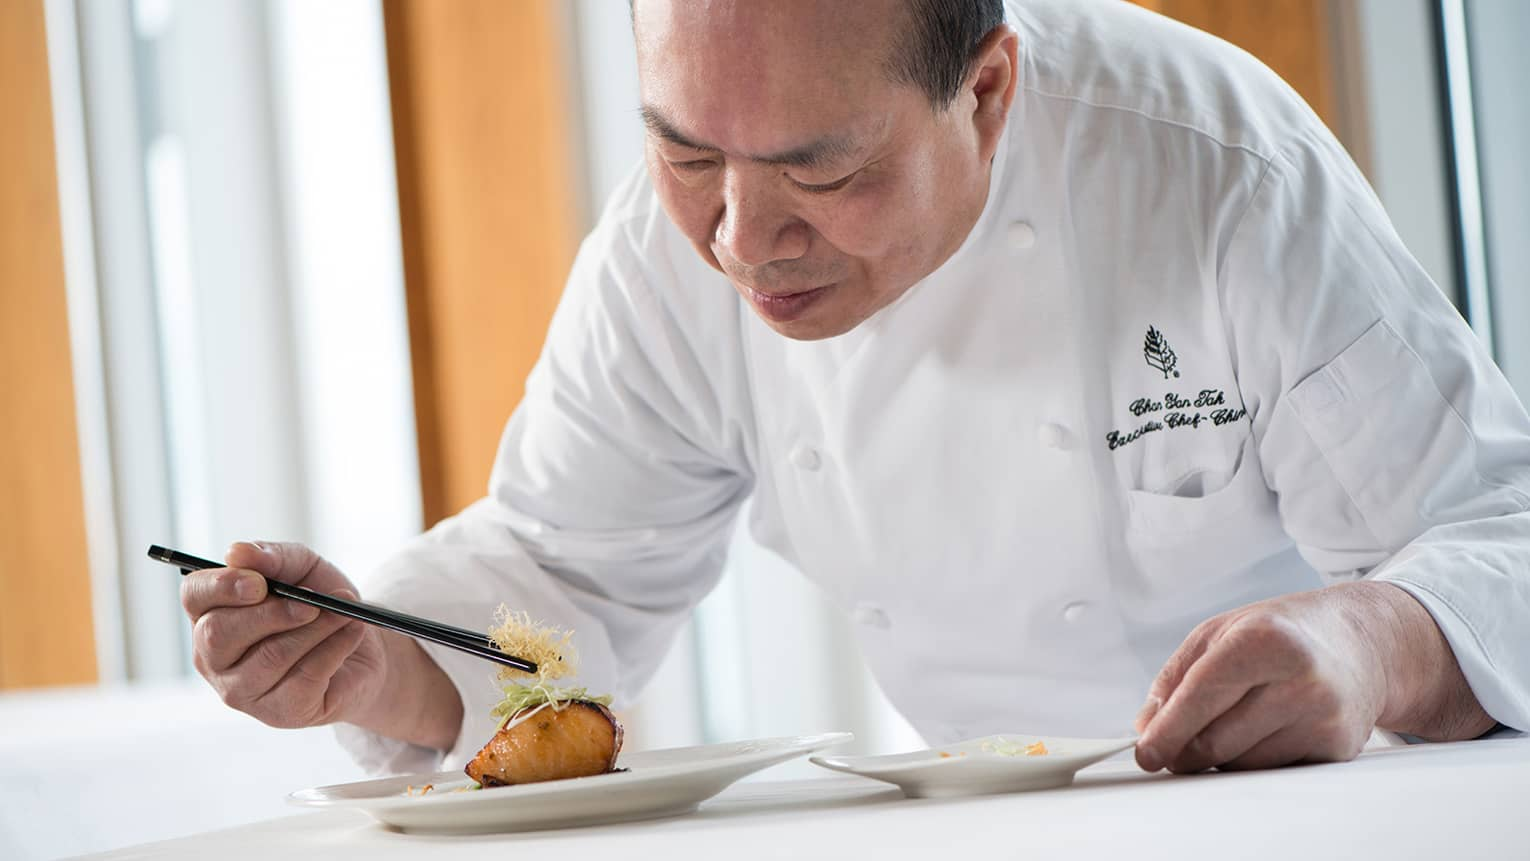 Chef in white uniform leans over grilled salmon dish on plate, adds garnish with chopsticks